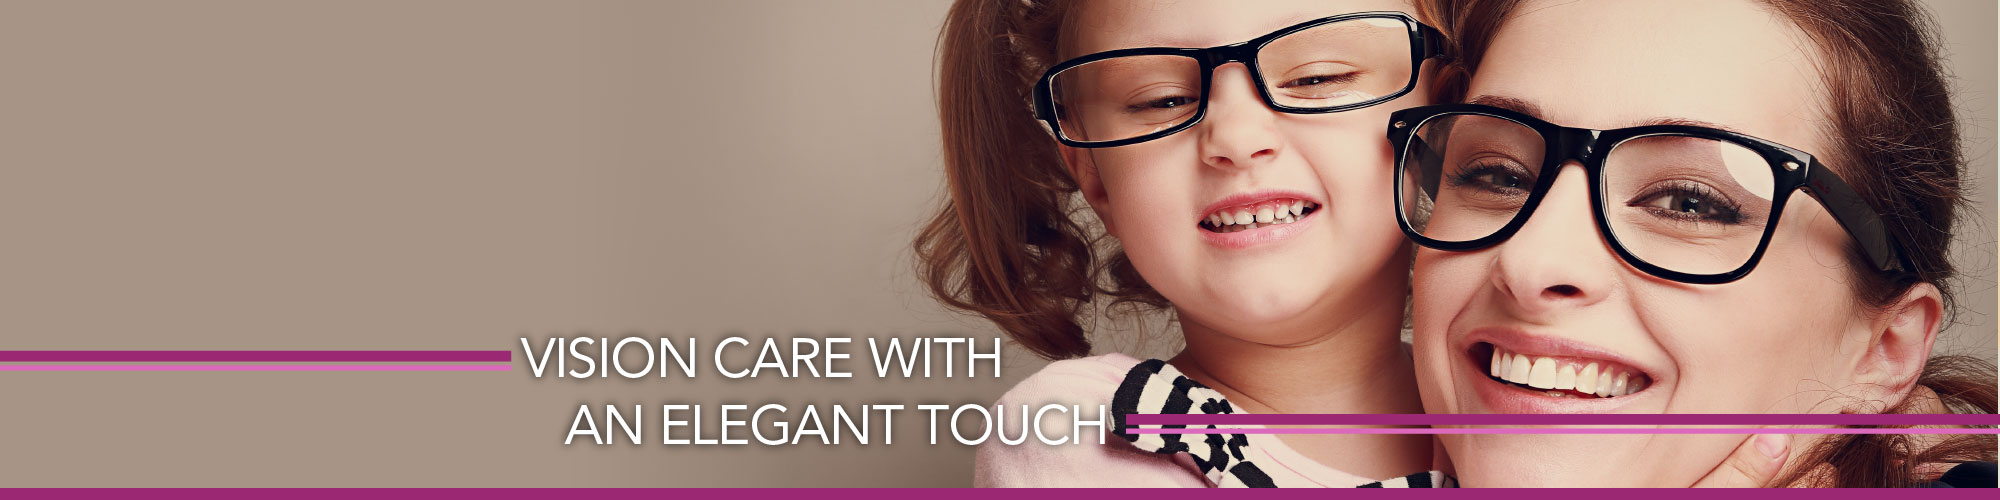 Vision Care with an Elegant Touch | mother and daughter with glasses